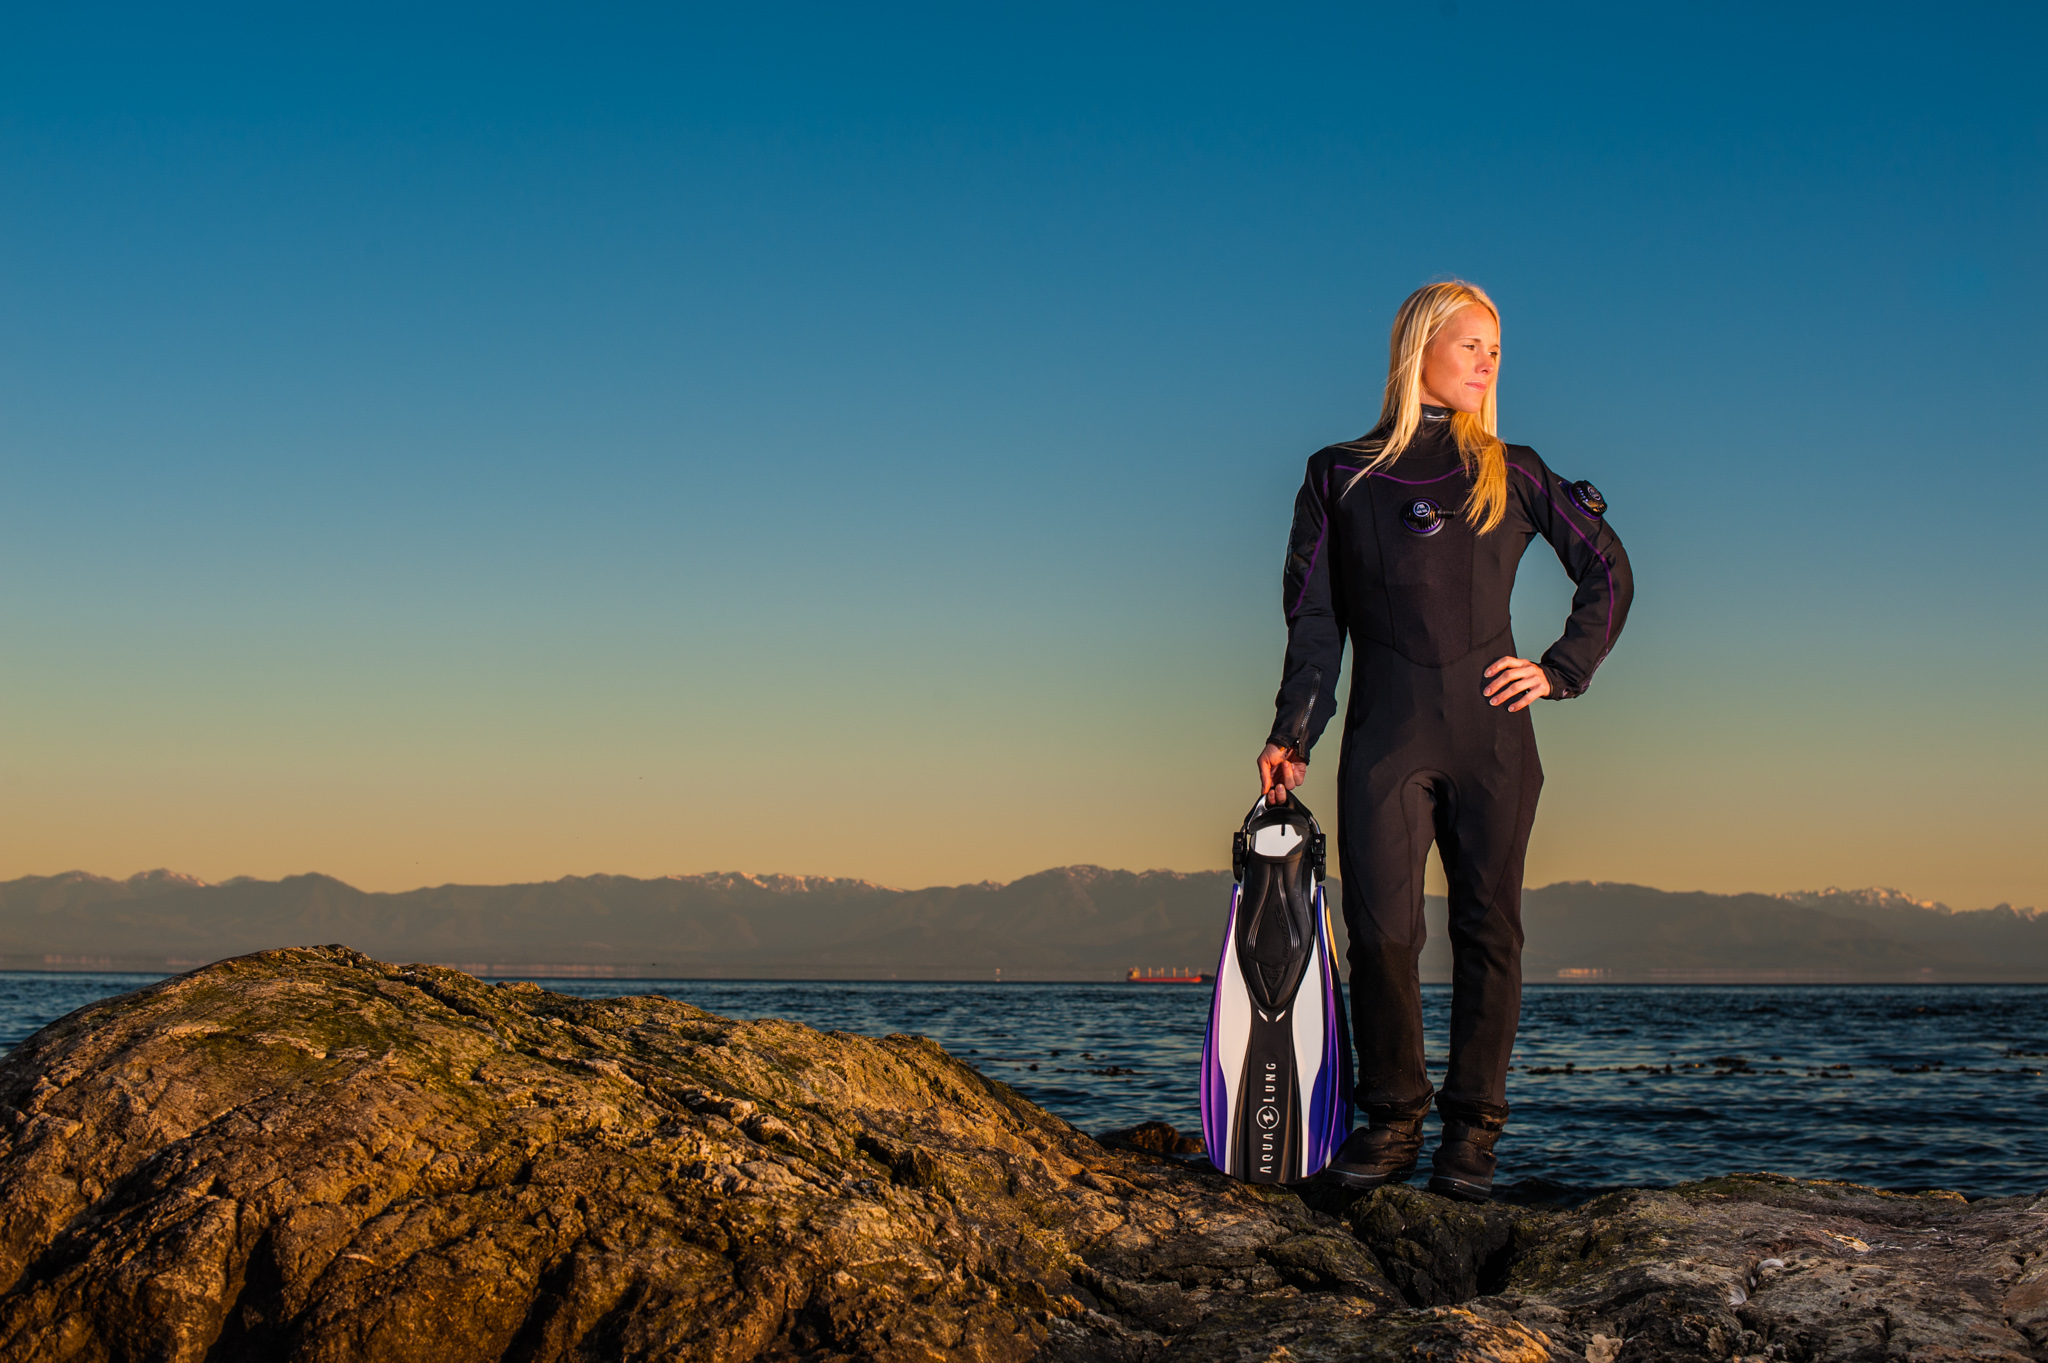 Have Any Questions? - Contact Rowand's Reef Dive Team to find out more about getting your Drysuit Certification, so that you can enjoy the cold water on your next dive adventure!